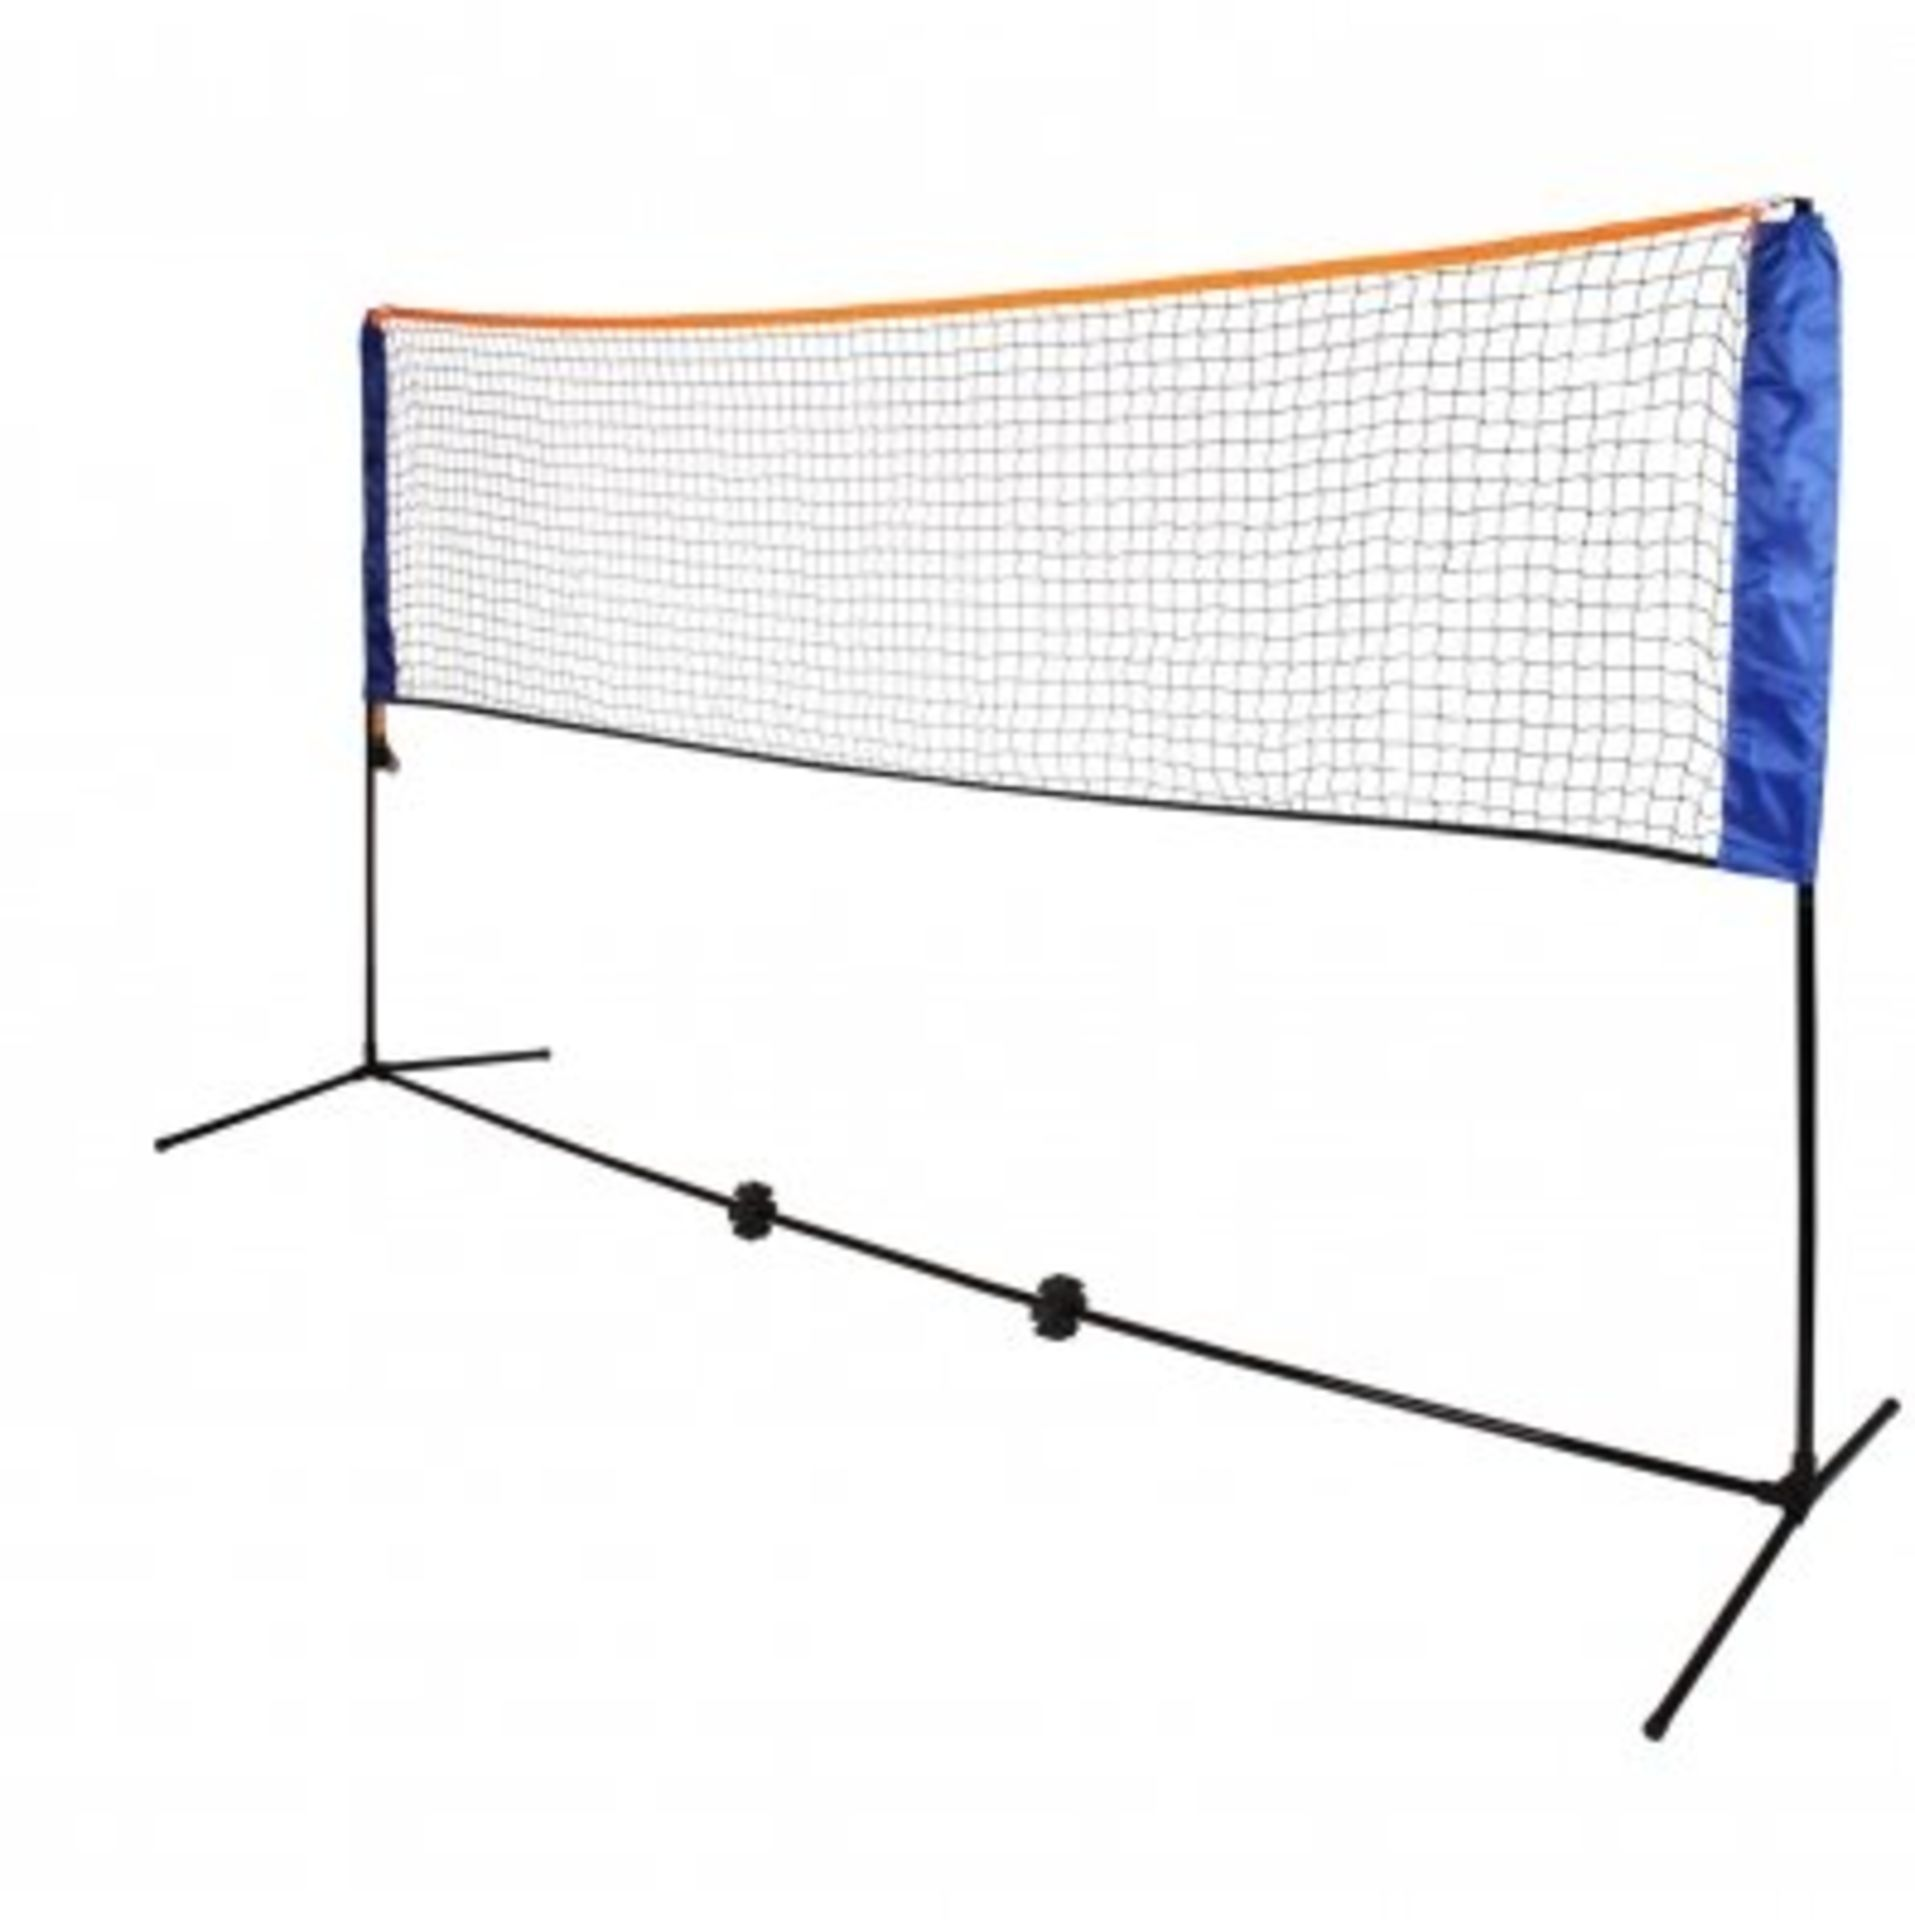 (RL29) Medium 4m Adjustable Foldable Badminton Tennis Volleyball Net The posts are able to...